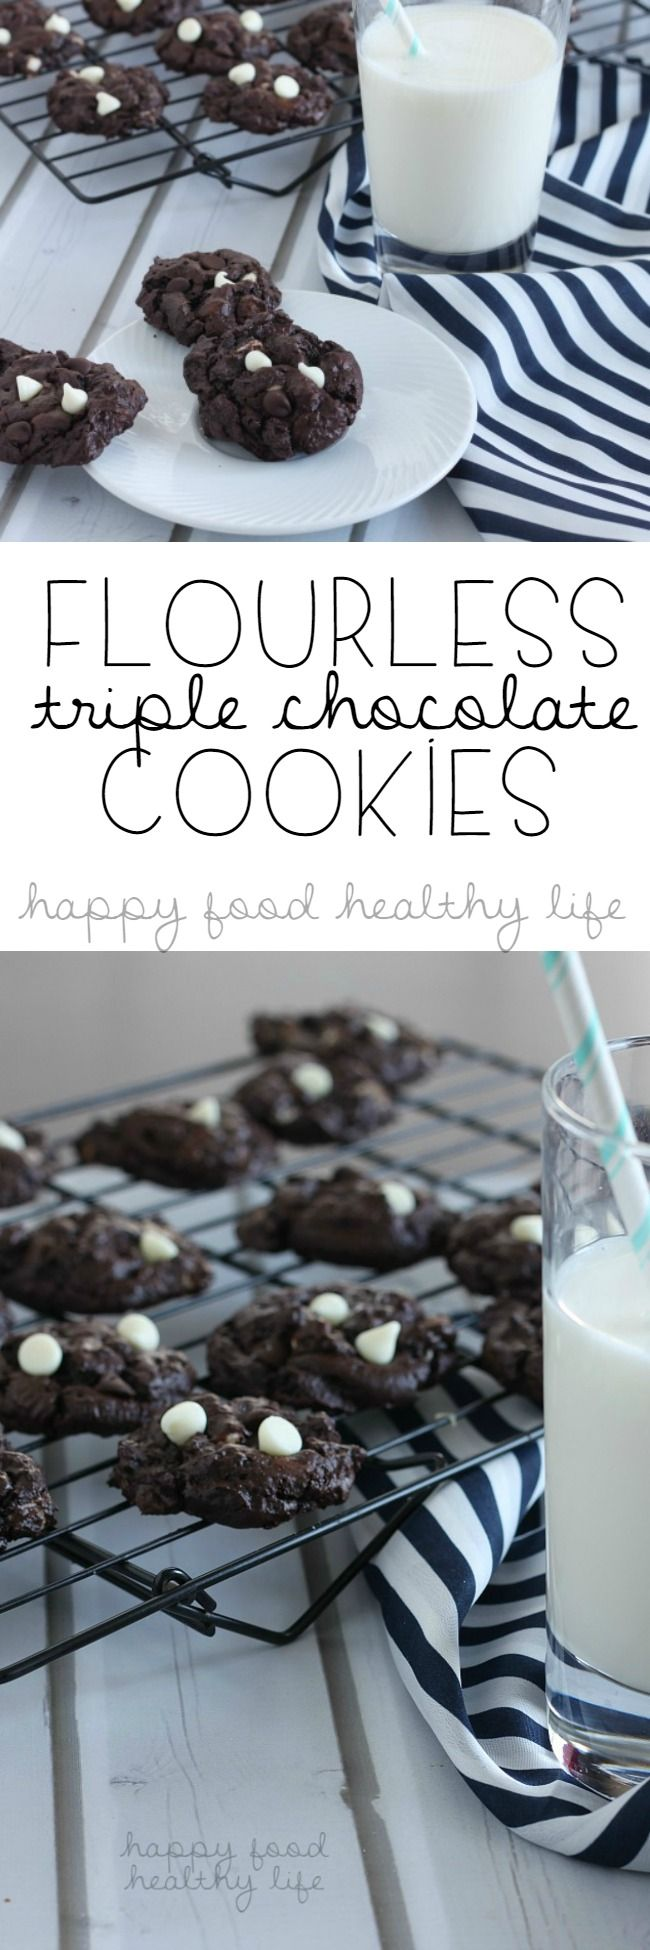 Flourless Triple Chocolate Cookies - I never knew gluten free could taste this rich and delectable!   www.happyfoodhealthylife.com